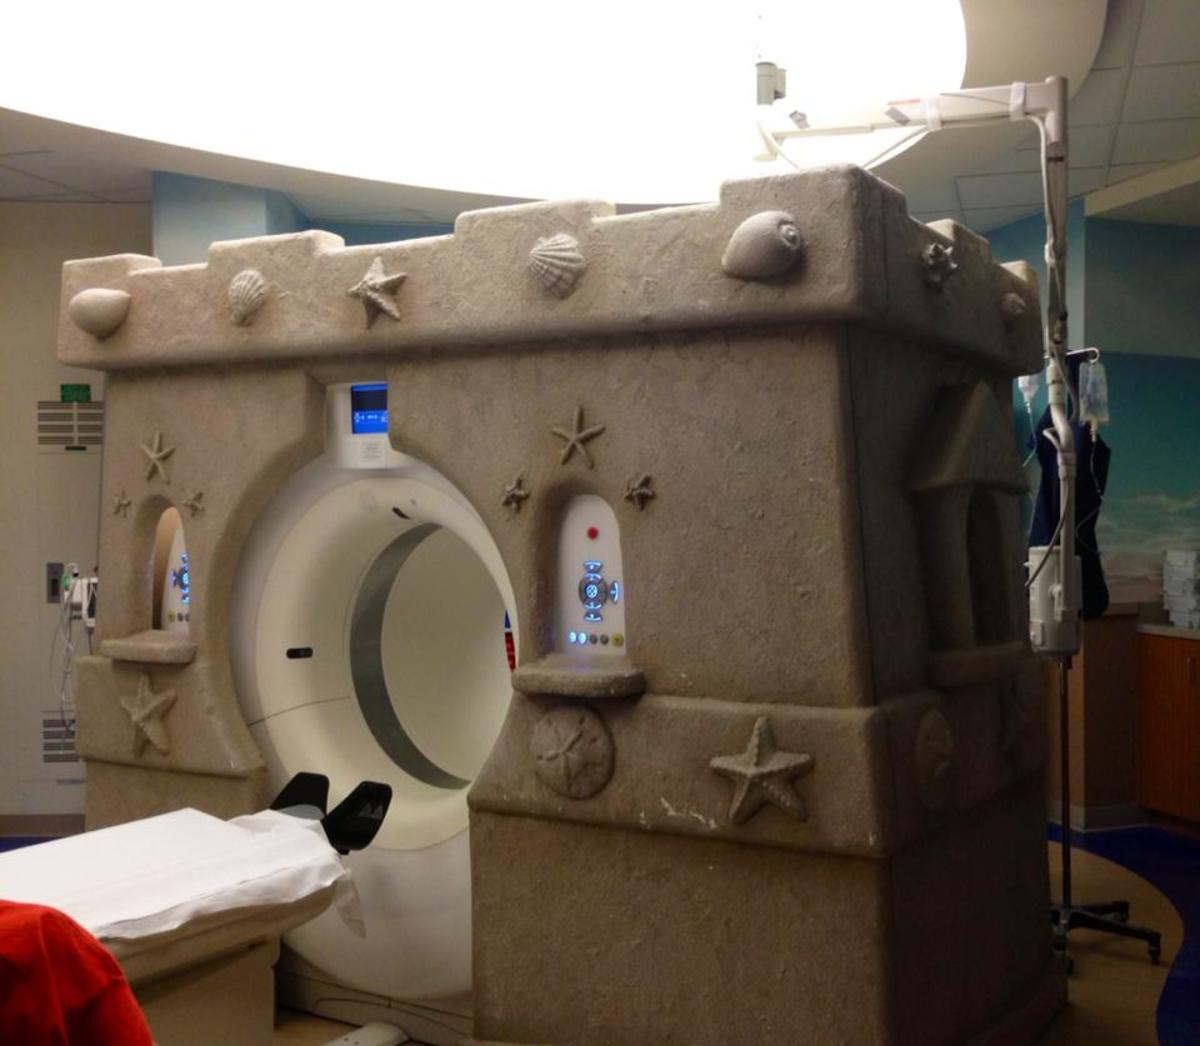 """The Imaging Department at Celebration Hospital in Orlando has an """"Under The Sea"""" theme! It's funtastic!"""